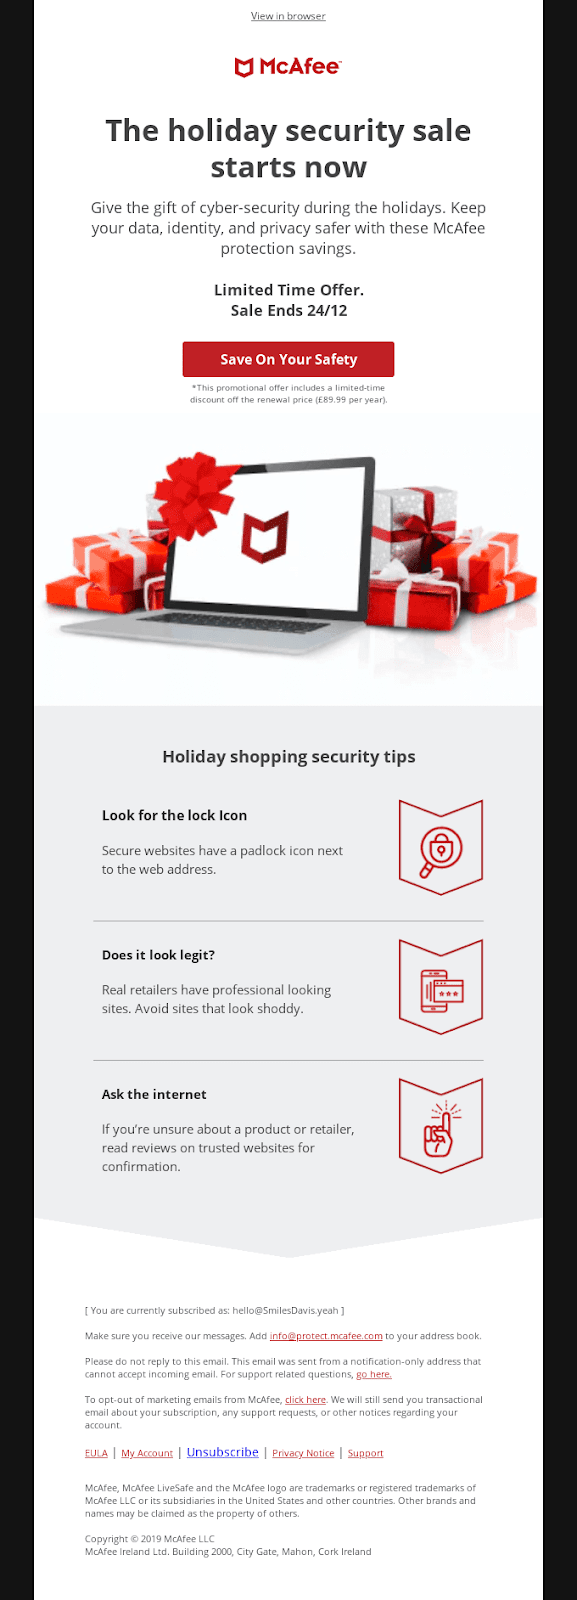 McAfee email example